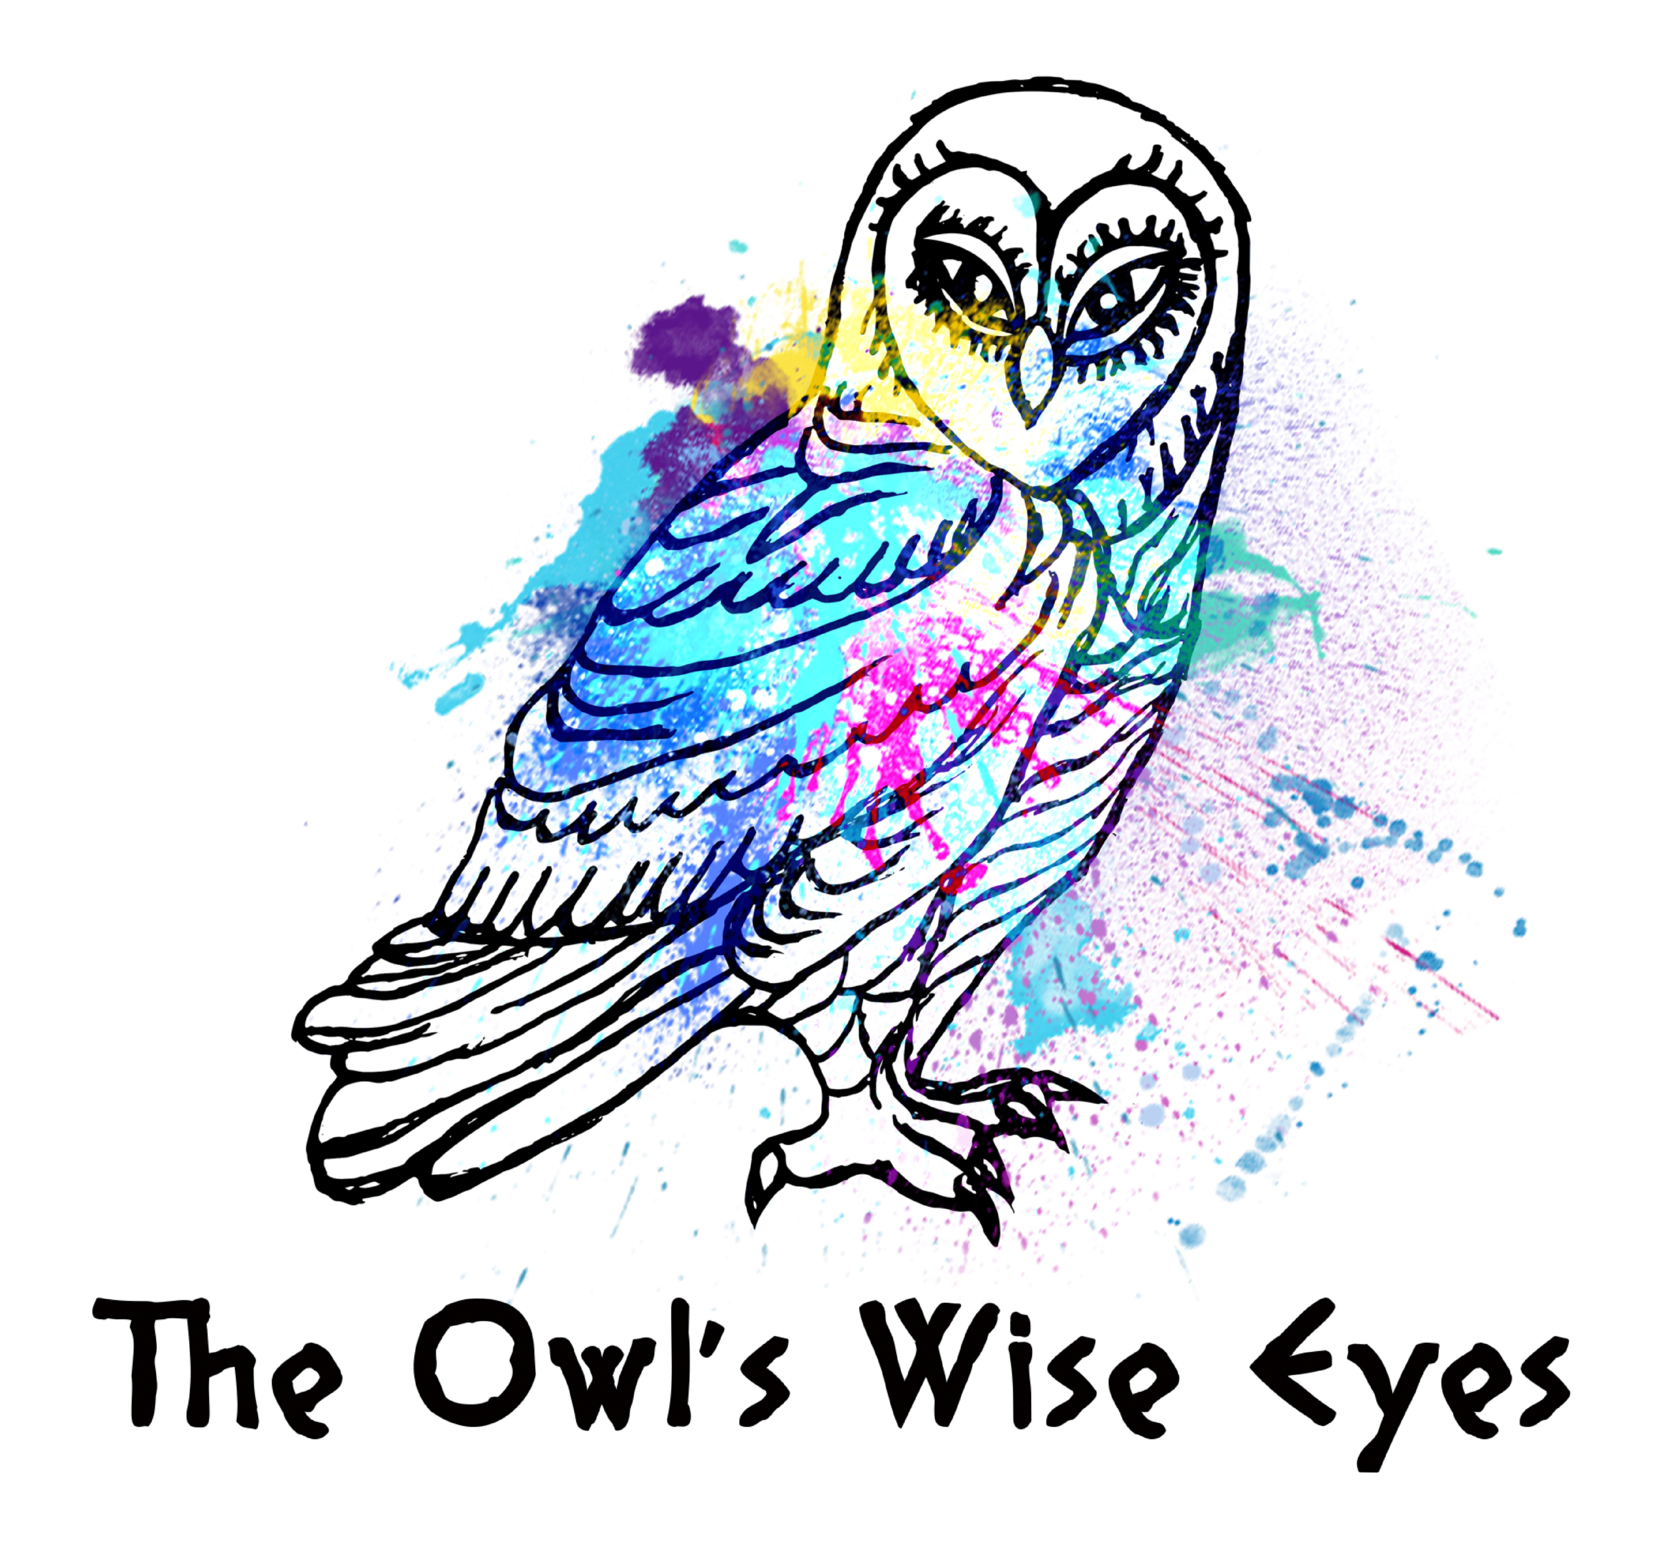 The Owl's Wise Eyes